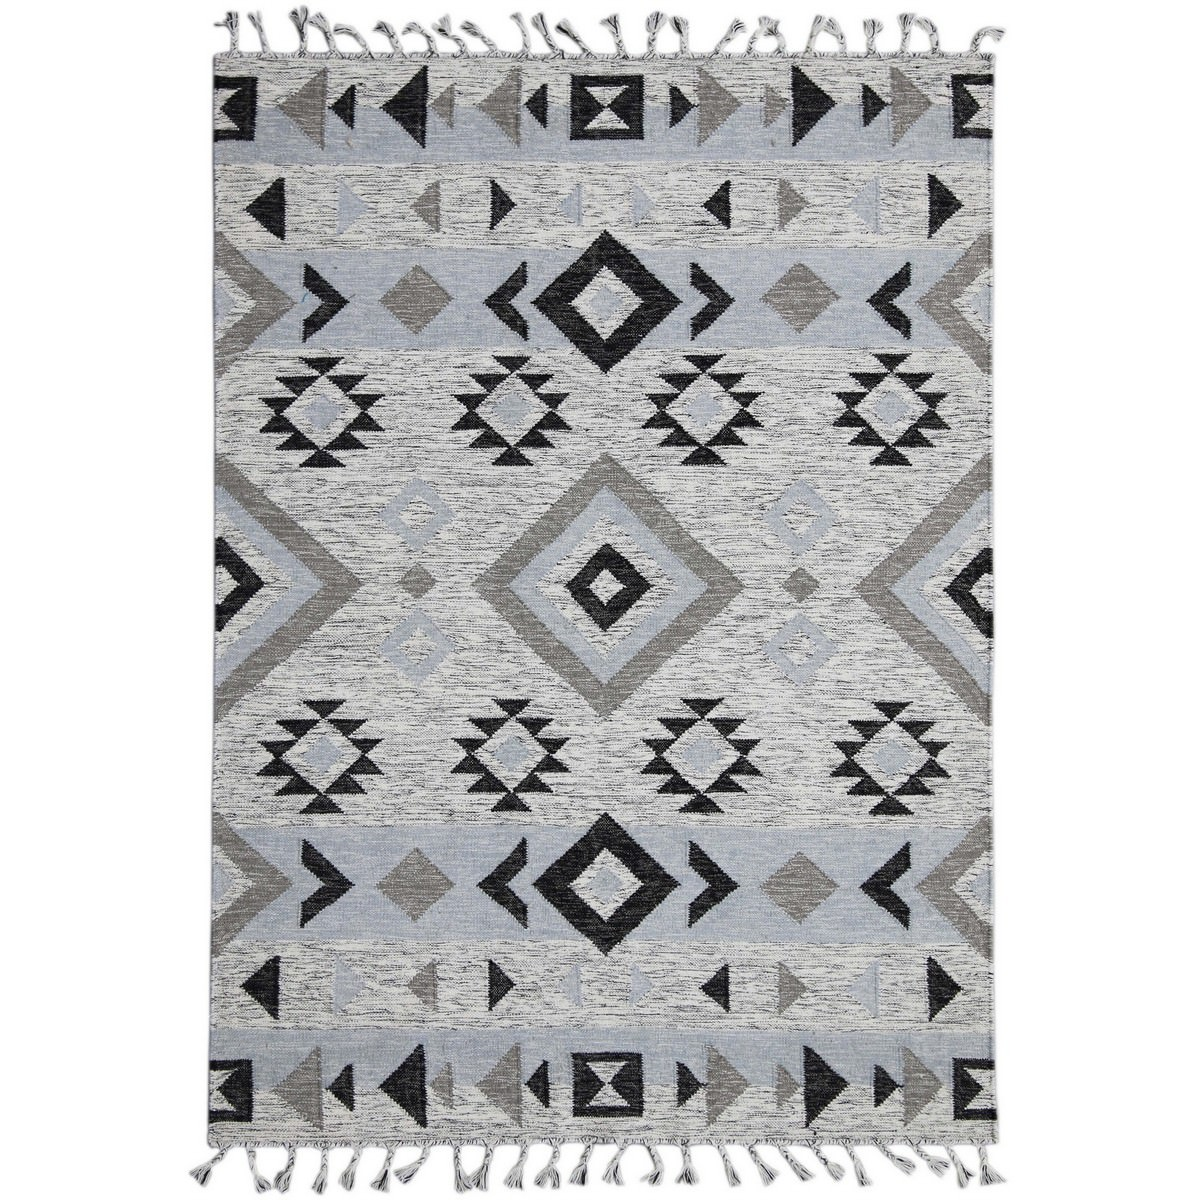 Artifact Handwoven Wool Rug , 190x280cm, Silver